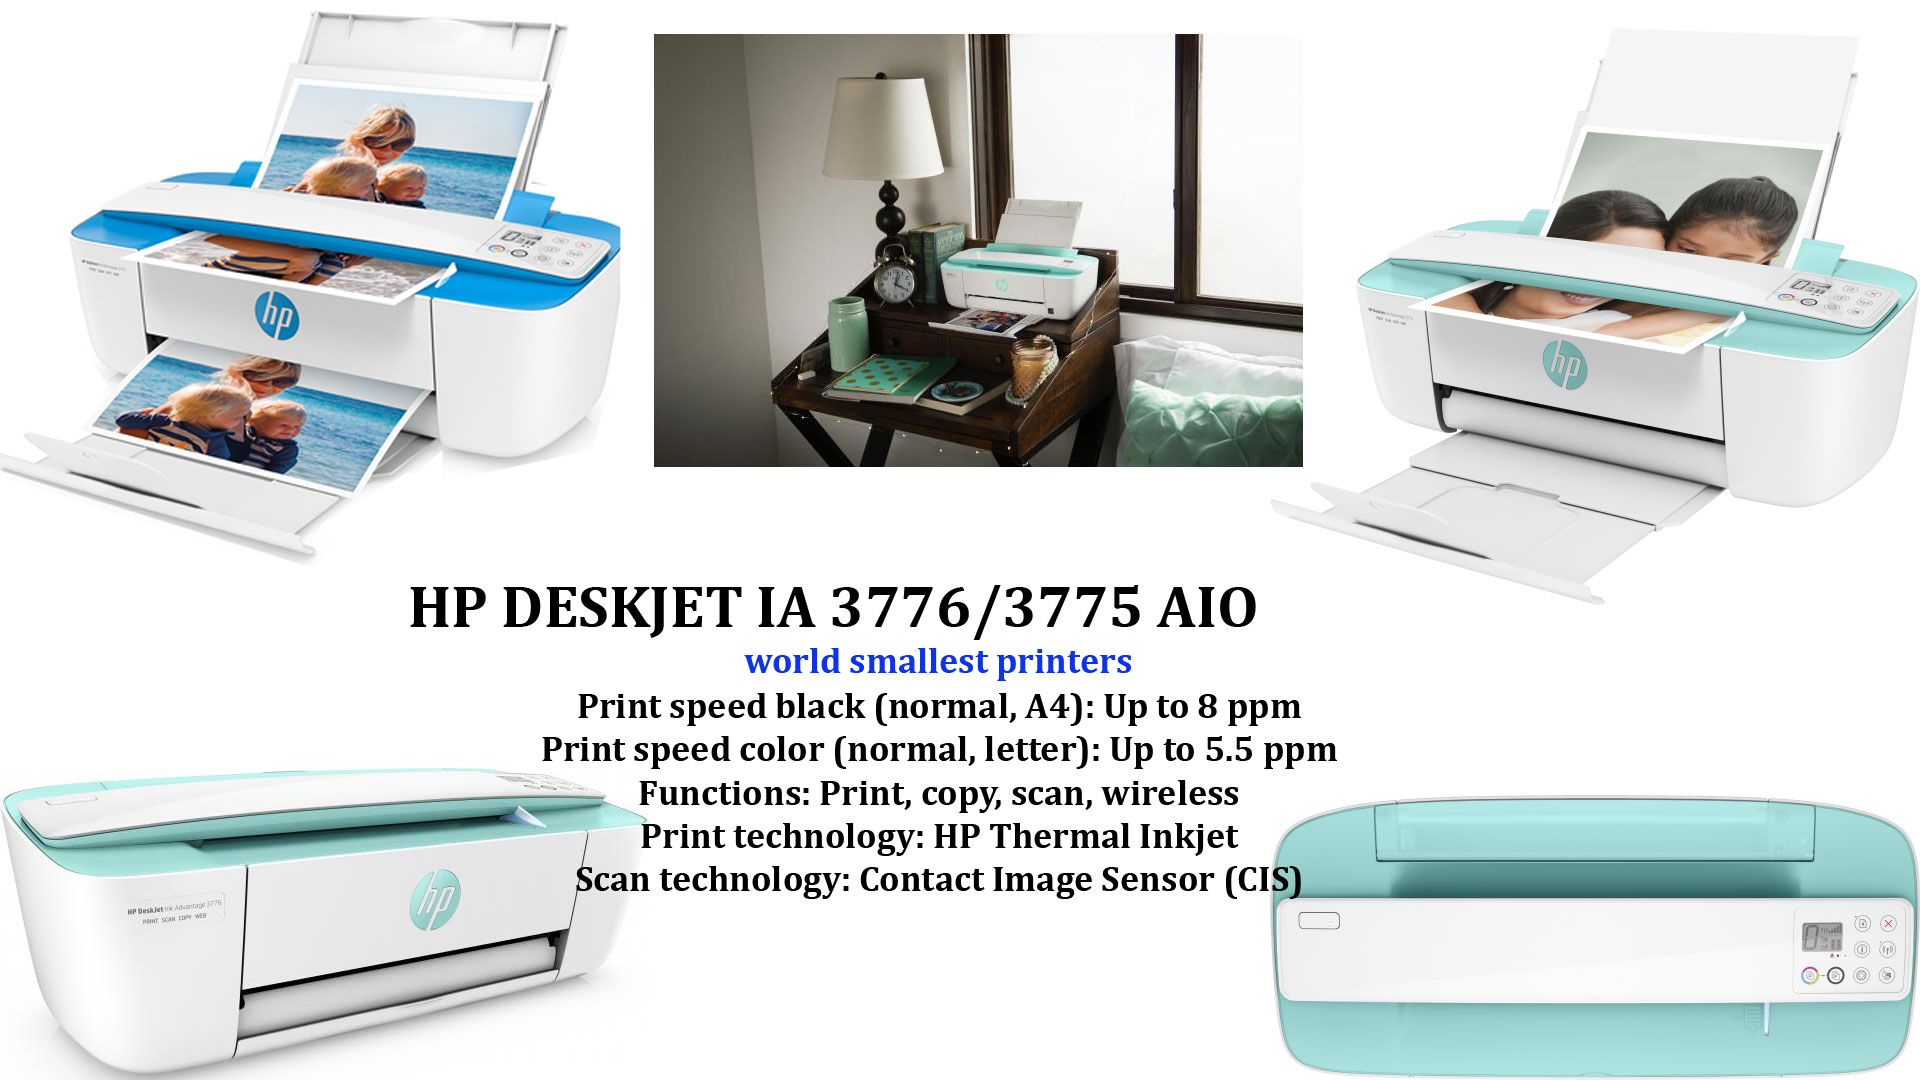 World Smallest All In One Printer Aio Hp Deskjet Ia 3776 3775 Ink Advantage